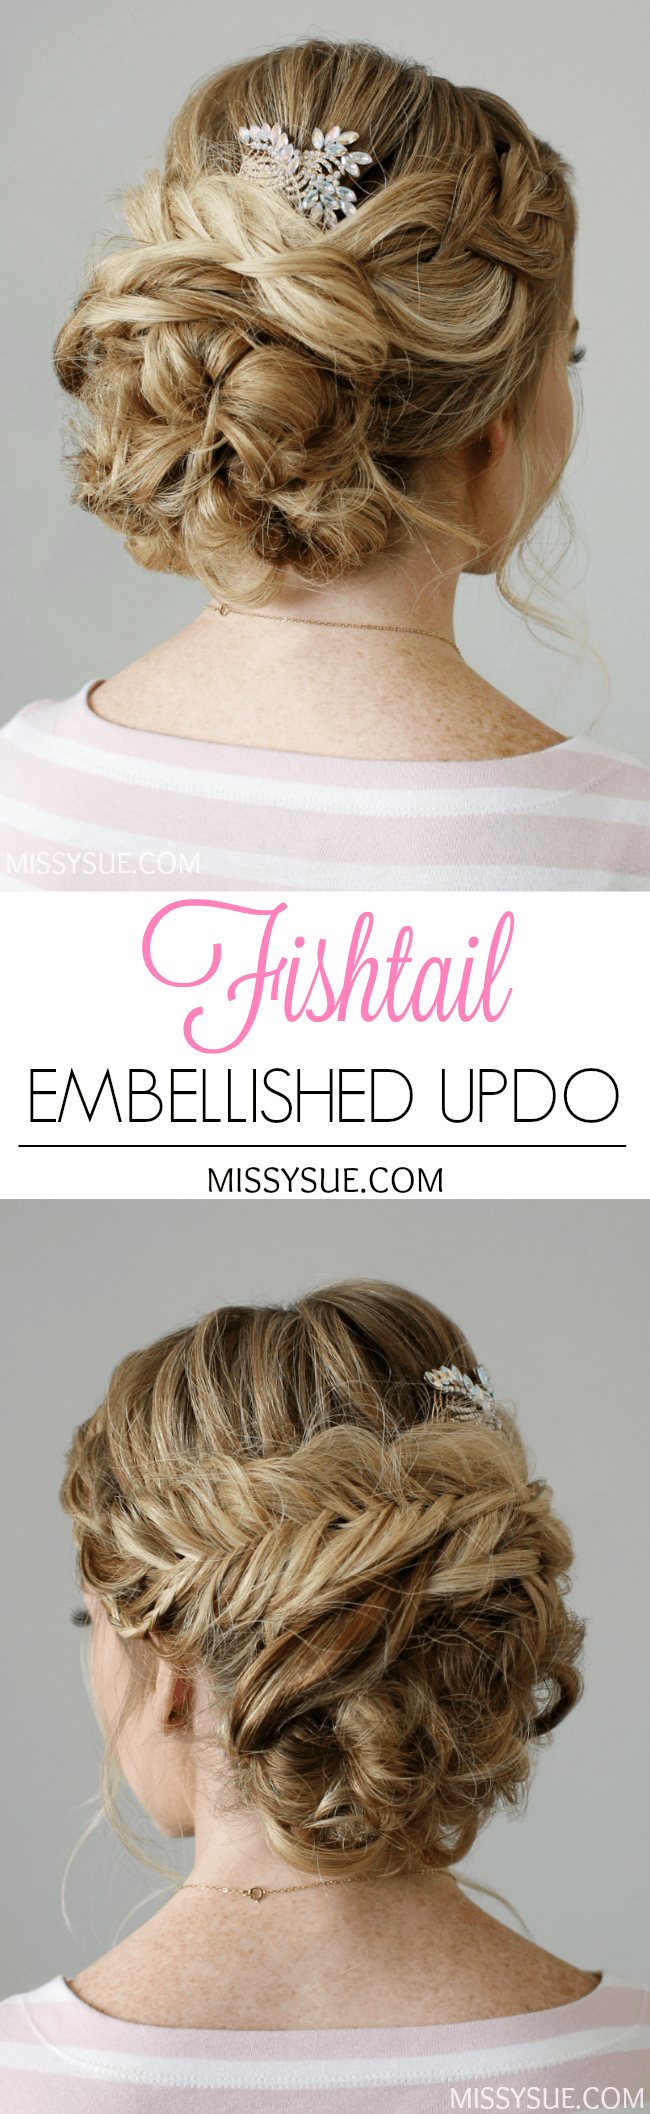 fishtail-embellished-updo-tutorial-missysue-2